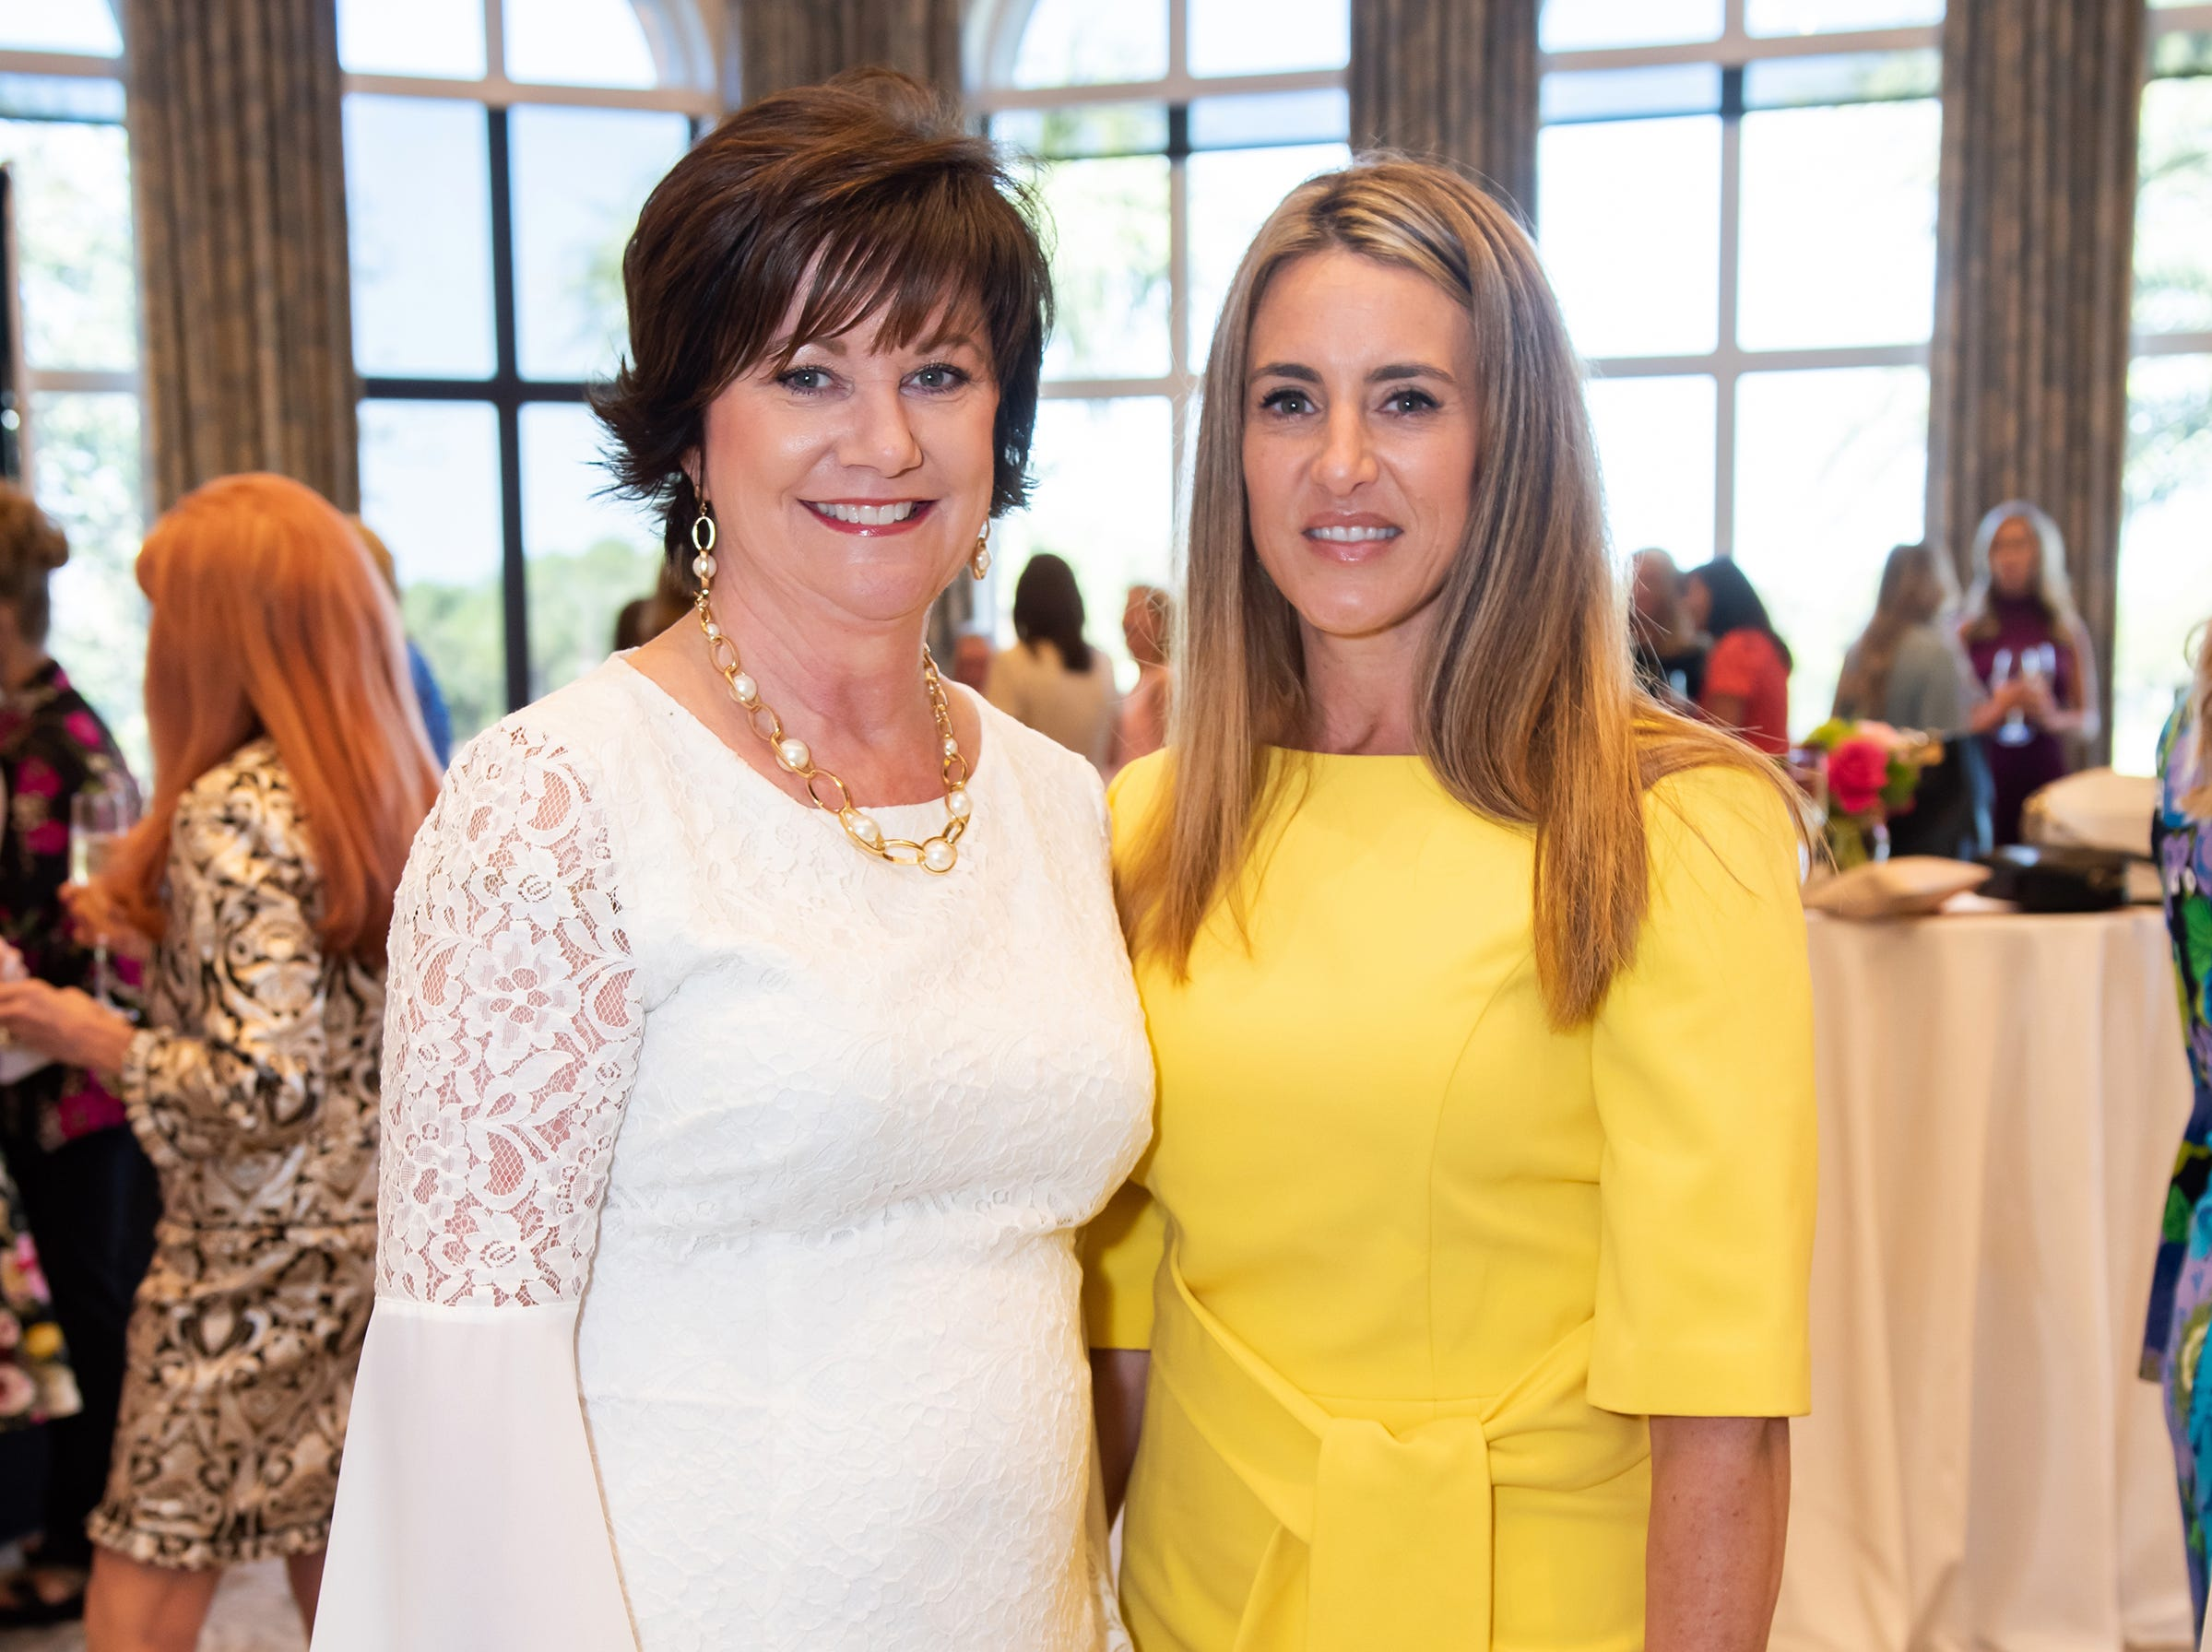 Patty McDonald and Joy Casciano at the Golden Heart Luncheon in Palm Beach Gardens.